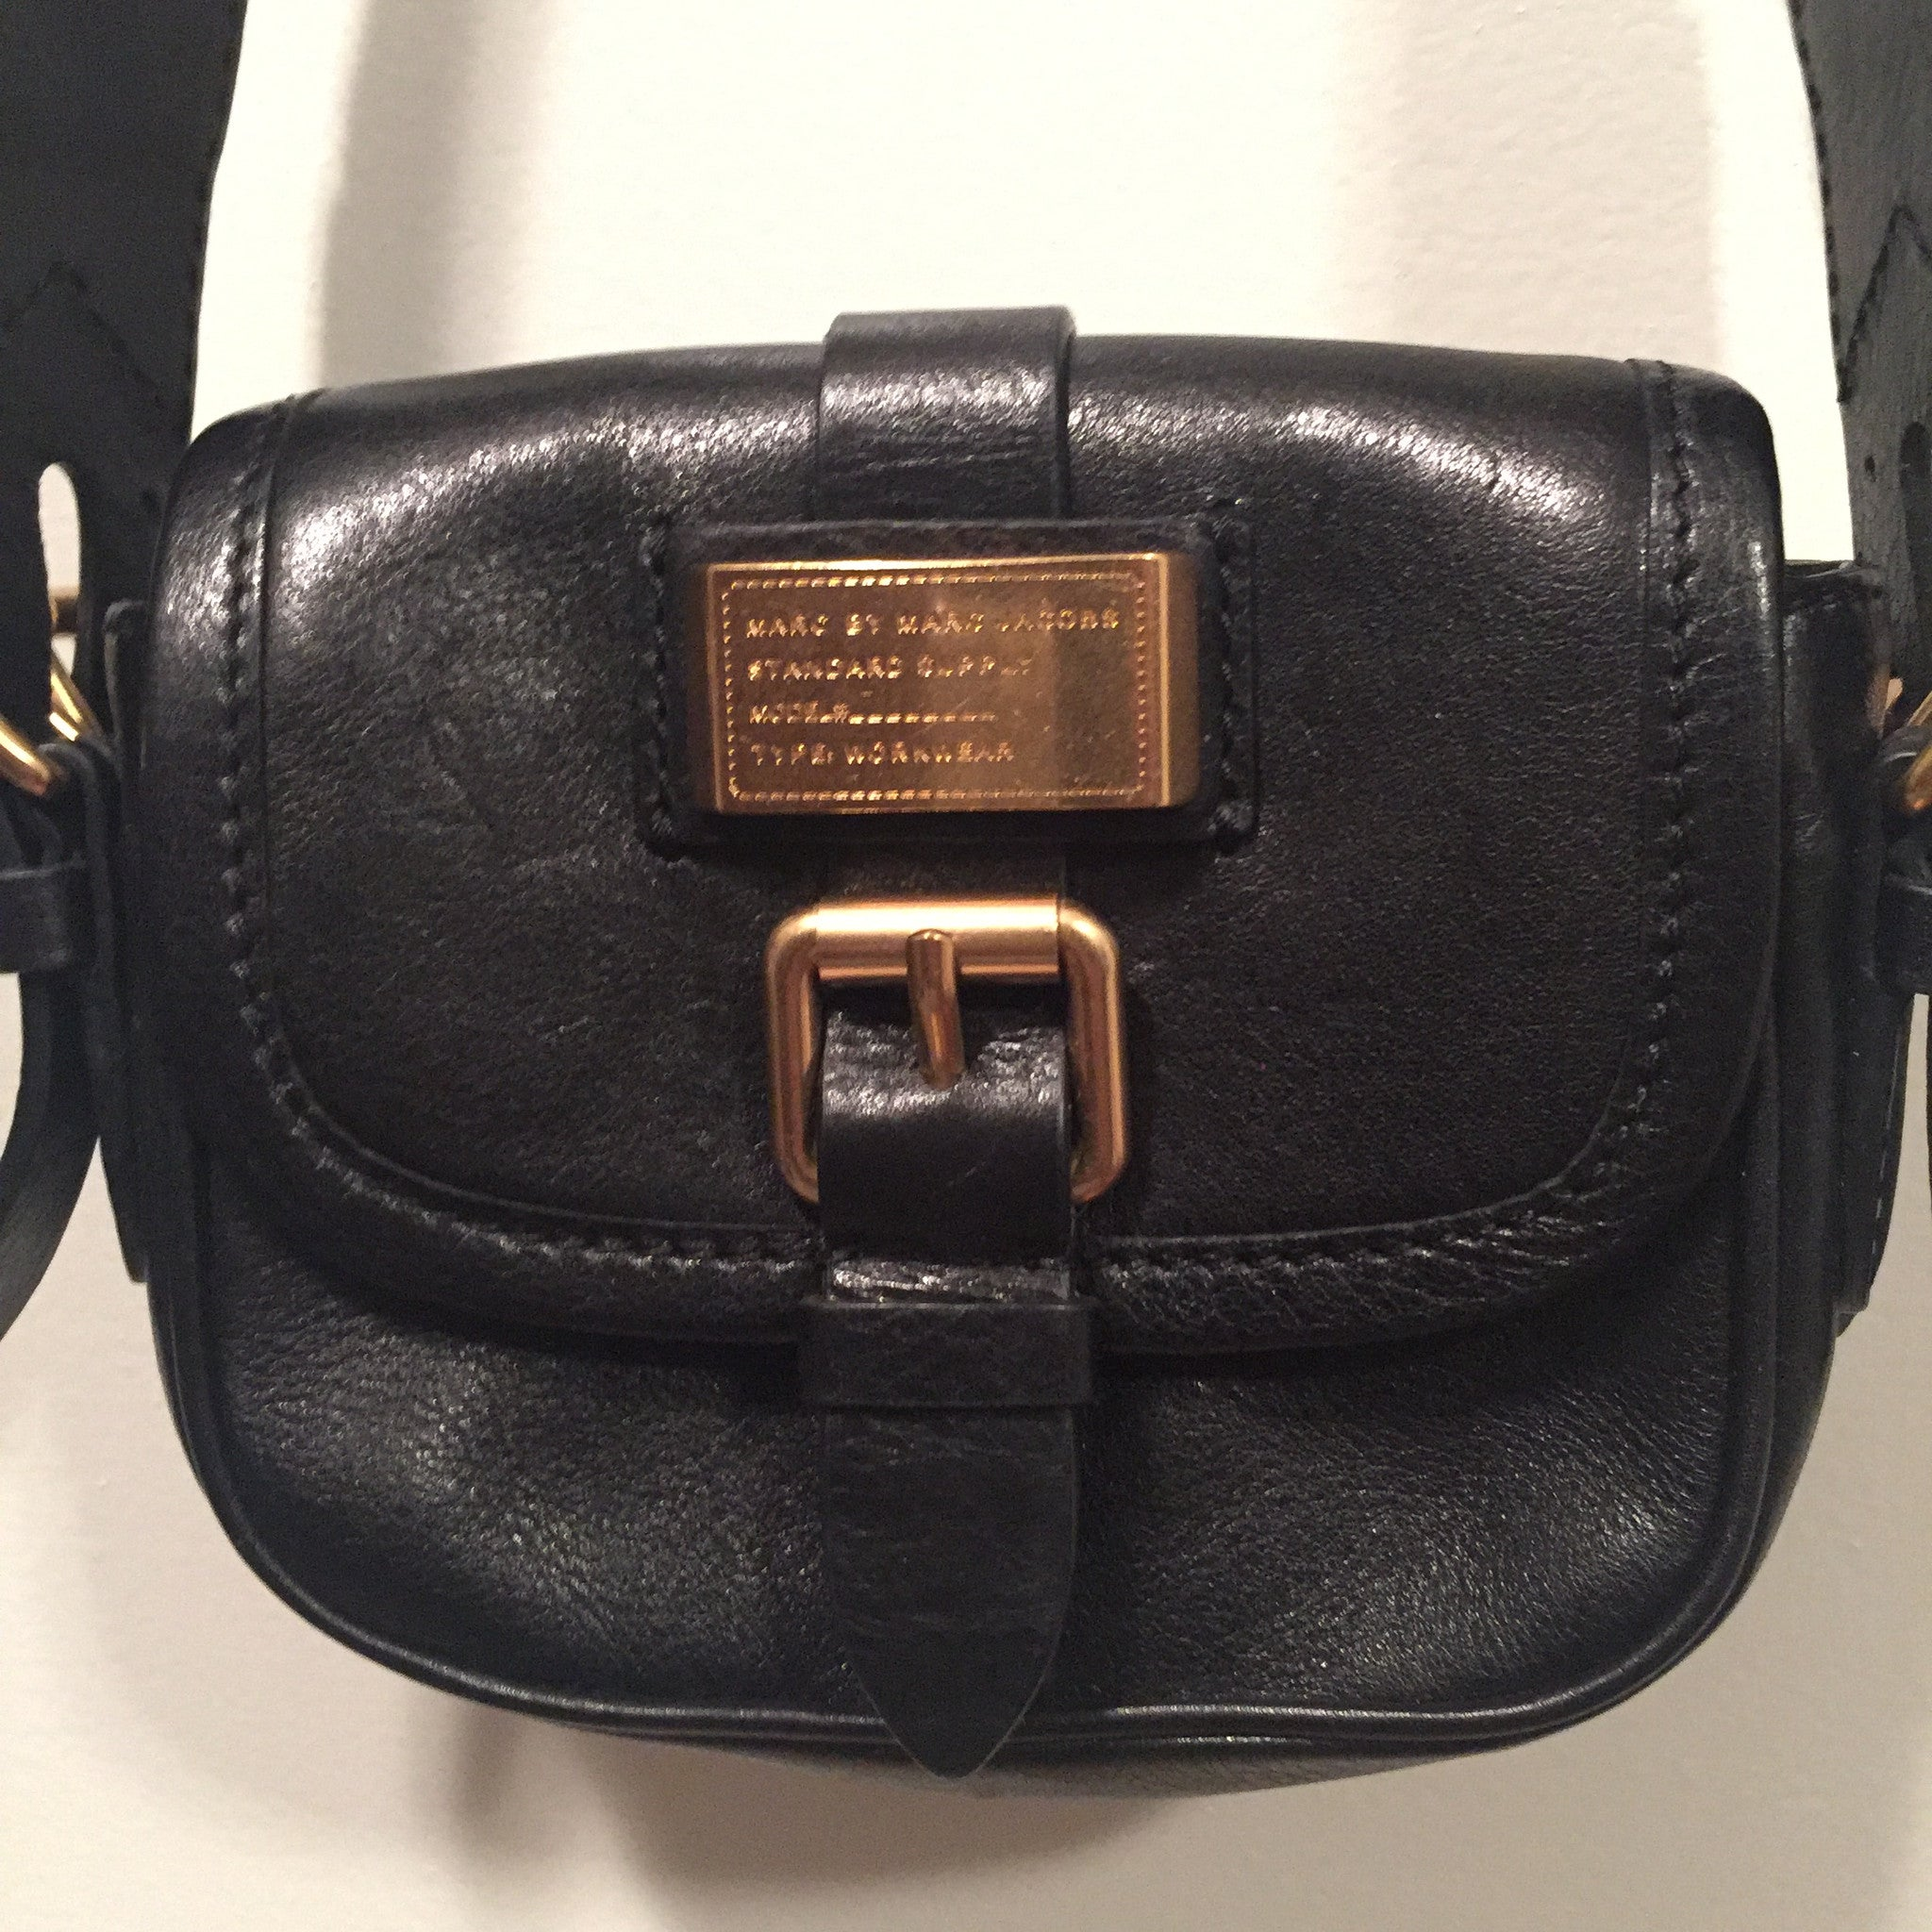 21d90f70af Marc by Marc Jacobs Black Crossbody Bag - New York Authentic Designer - Marc  by Marc